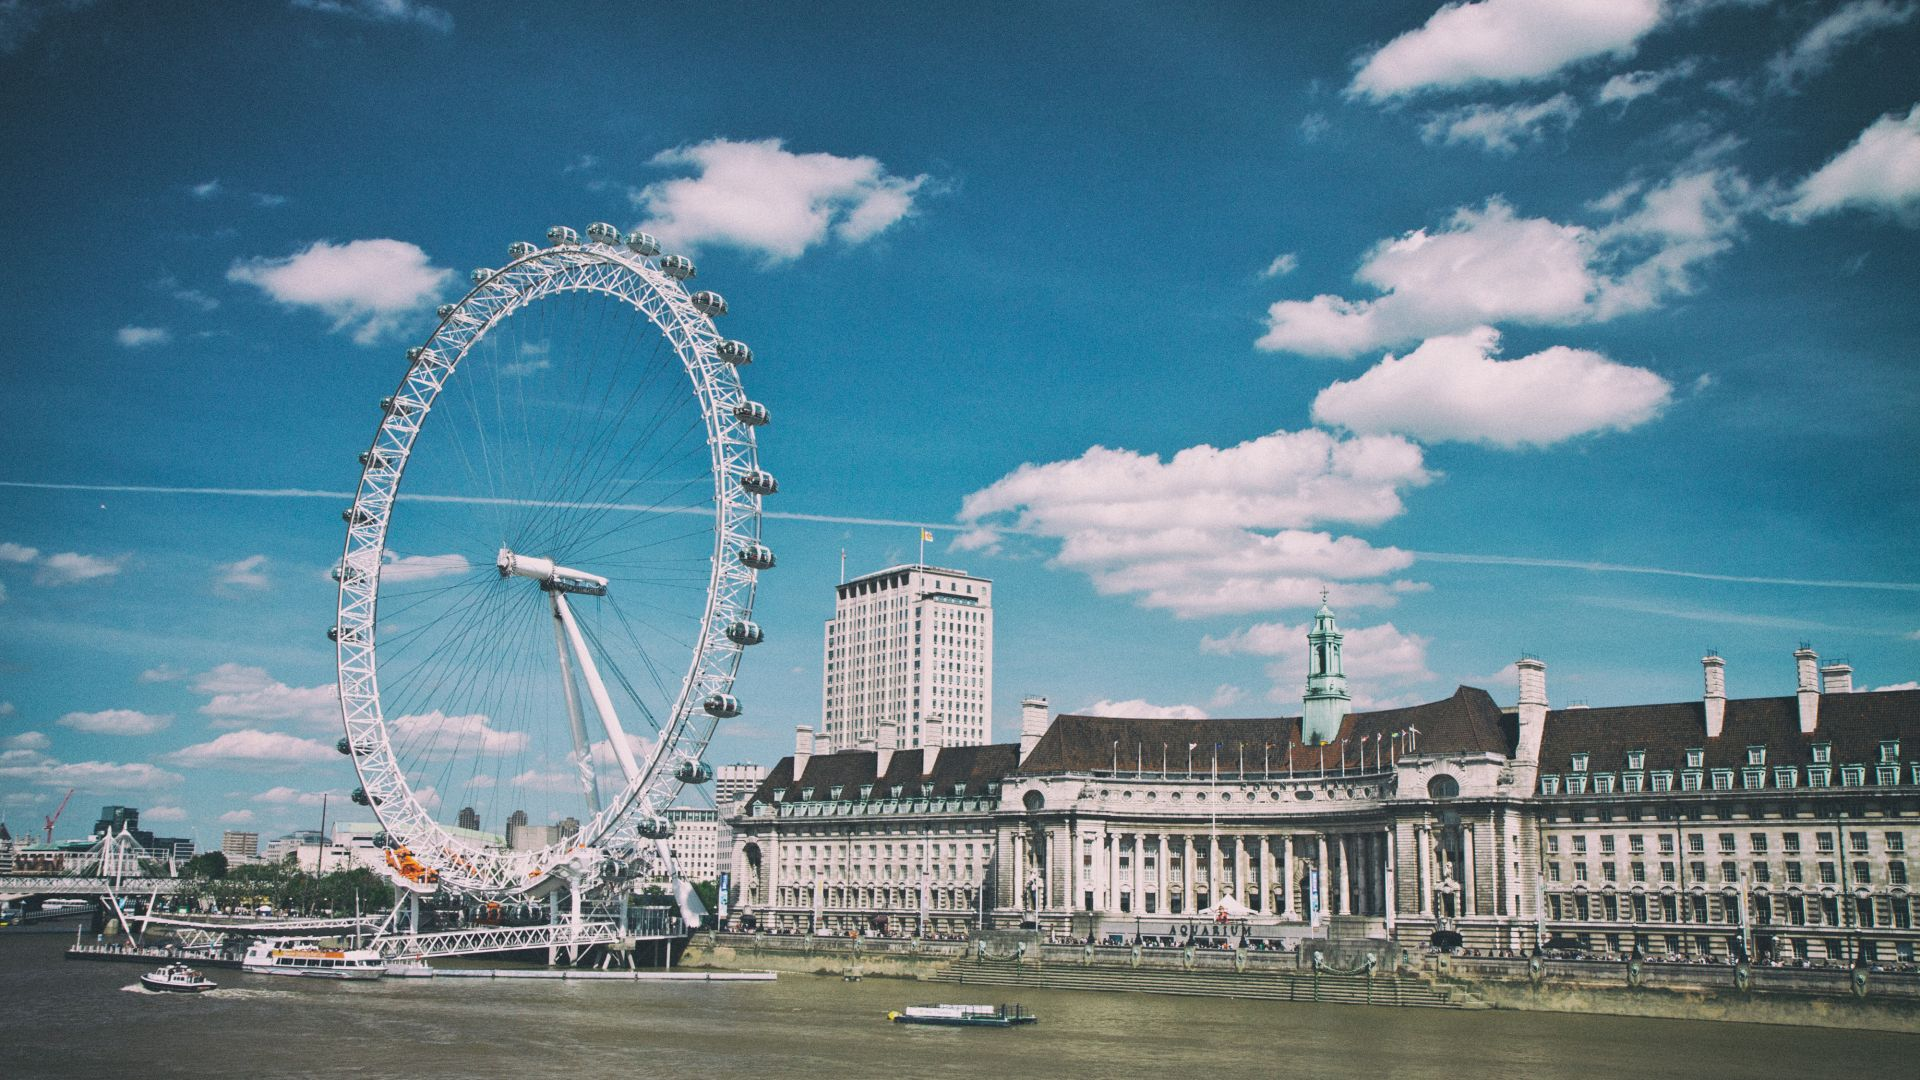 London Eye, Thames, London, England